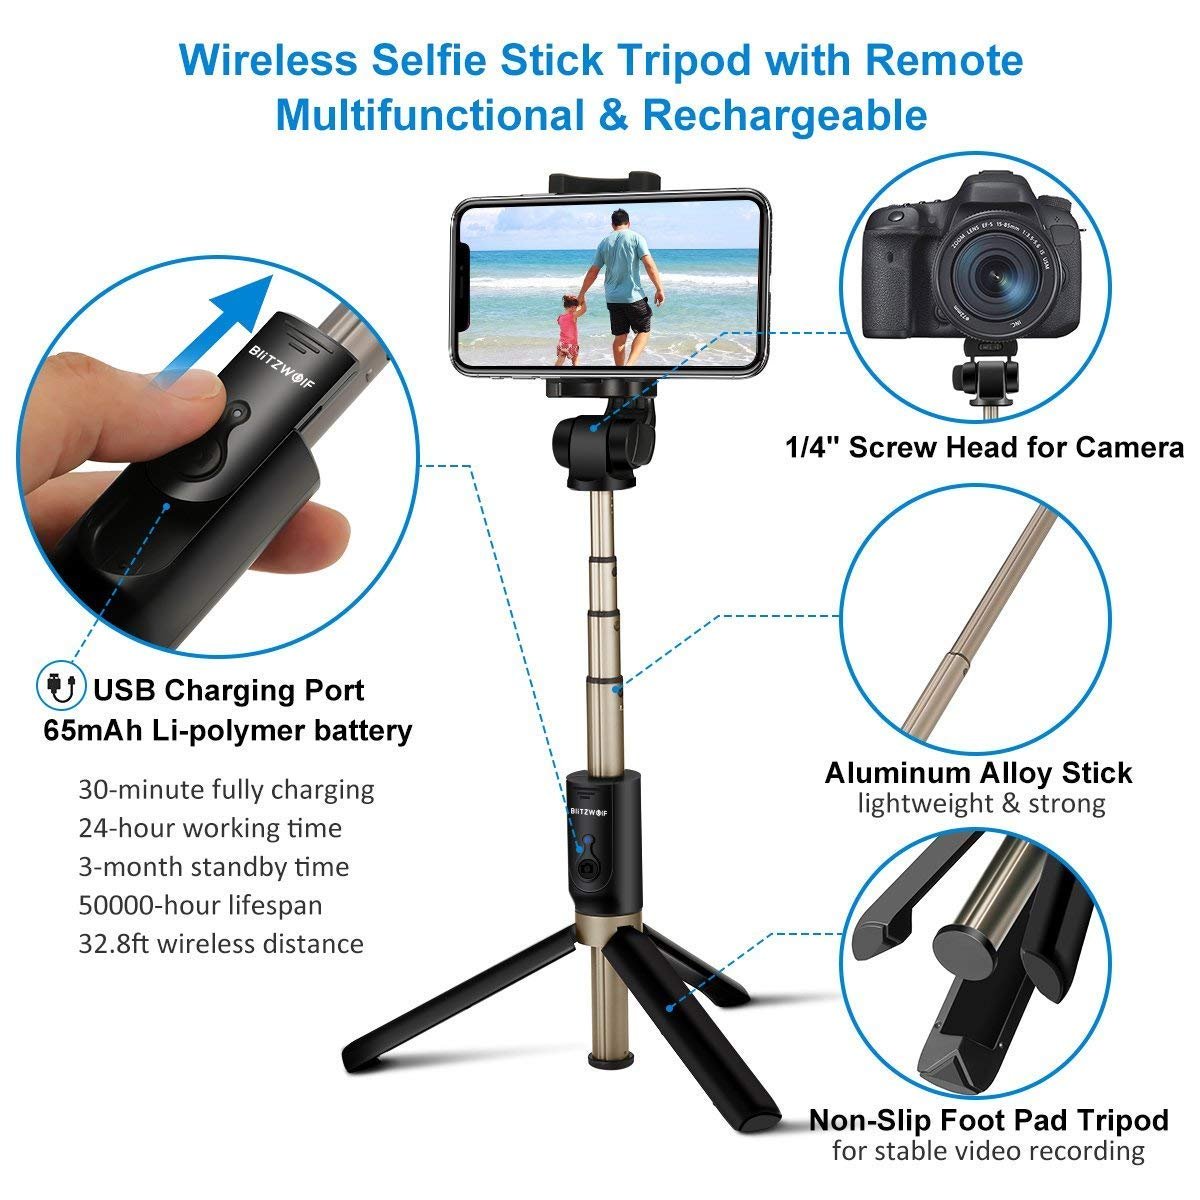 Blitzwolf Selfie Stick Tripod With Bluetooth Remote For Tongsis 3 In 1 Shutter Gopro Iphone X 8 Plus 7 6 6s Android Samsung S9 S8 S7 Edge 4 Mini Pocket